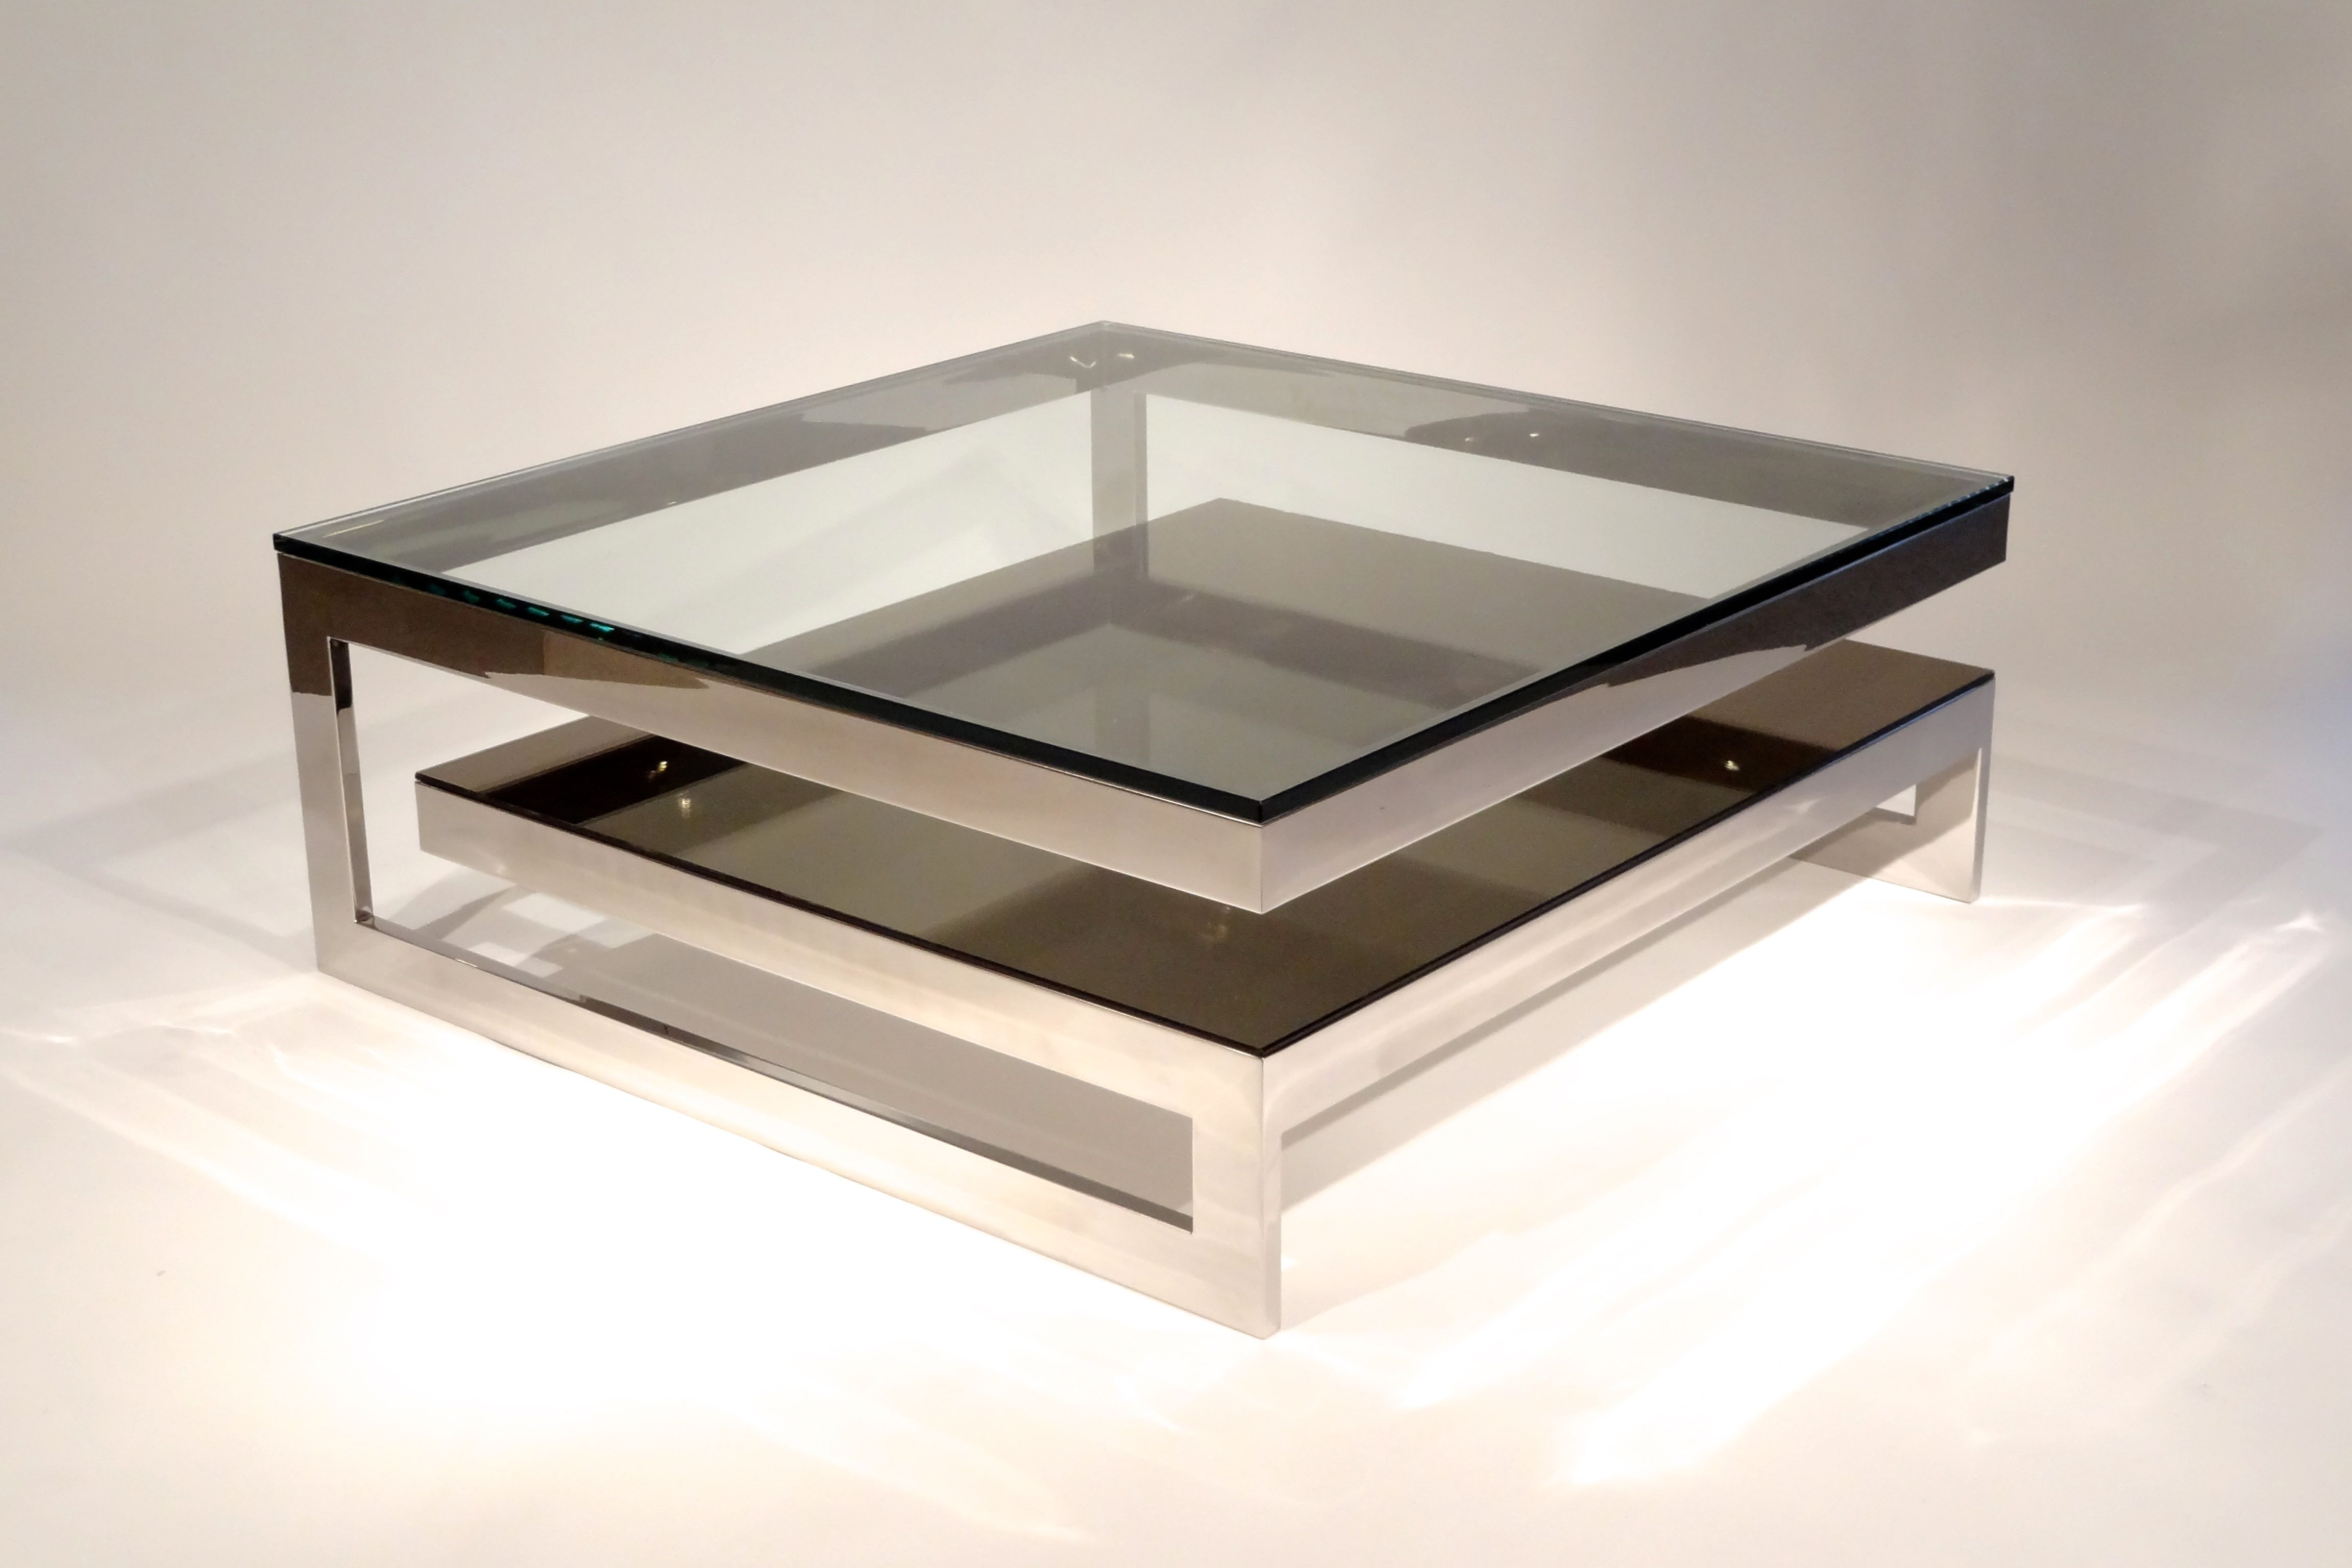 Mesmerizing Mirrored Coffee Table for Your Living Room ...